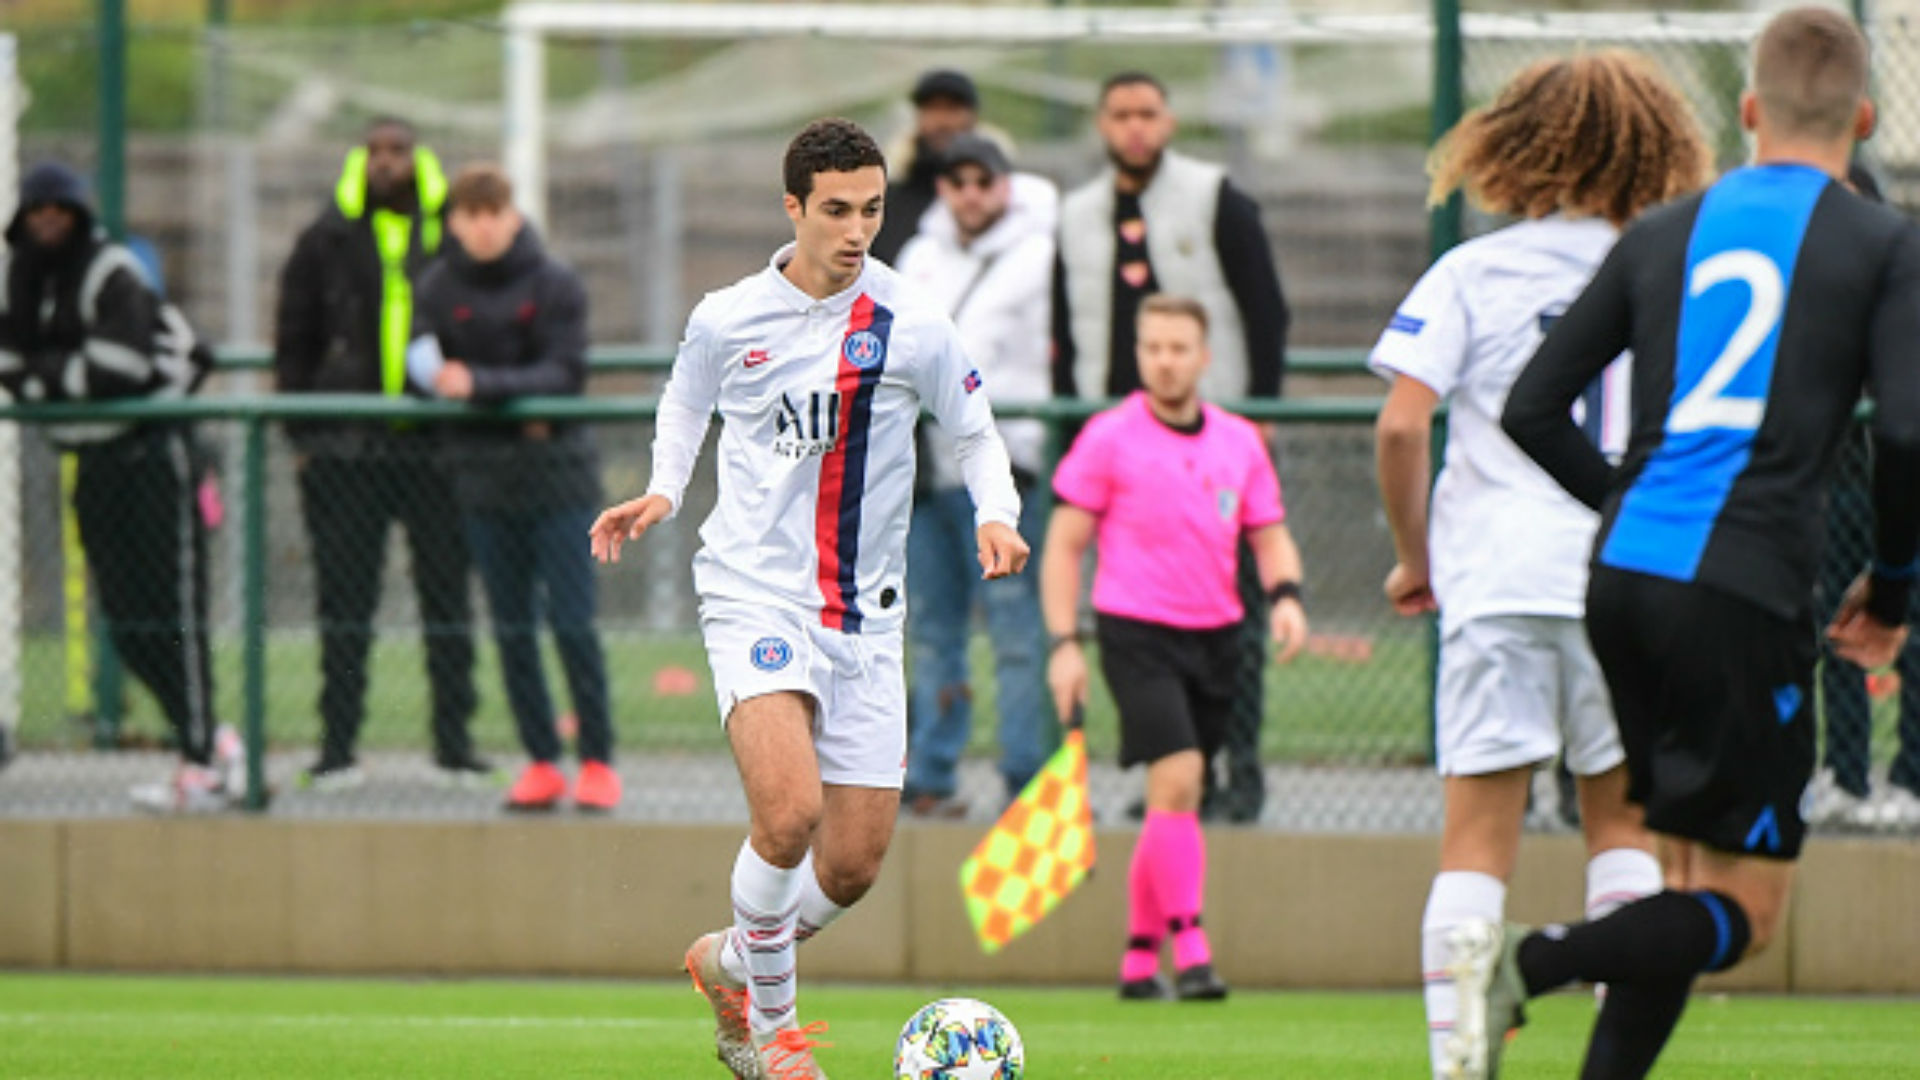 I spoke to Dembele before choosing Fulham, reveals ex-PSG youngster Larkeche